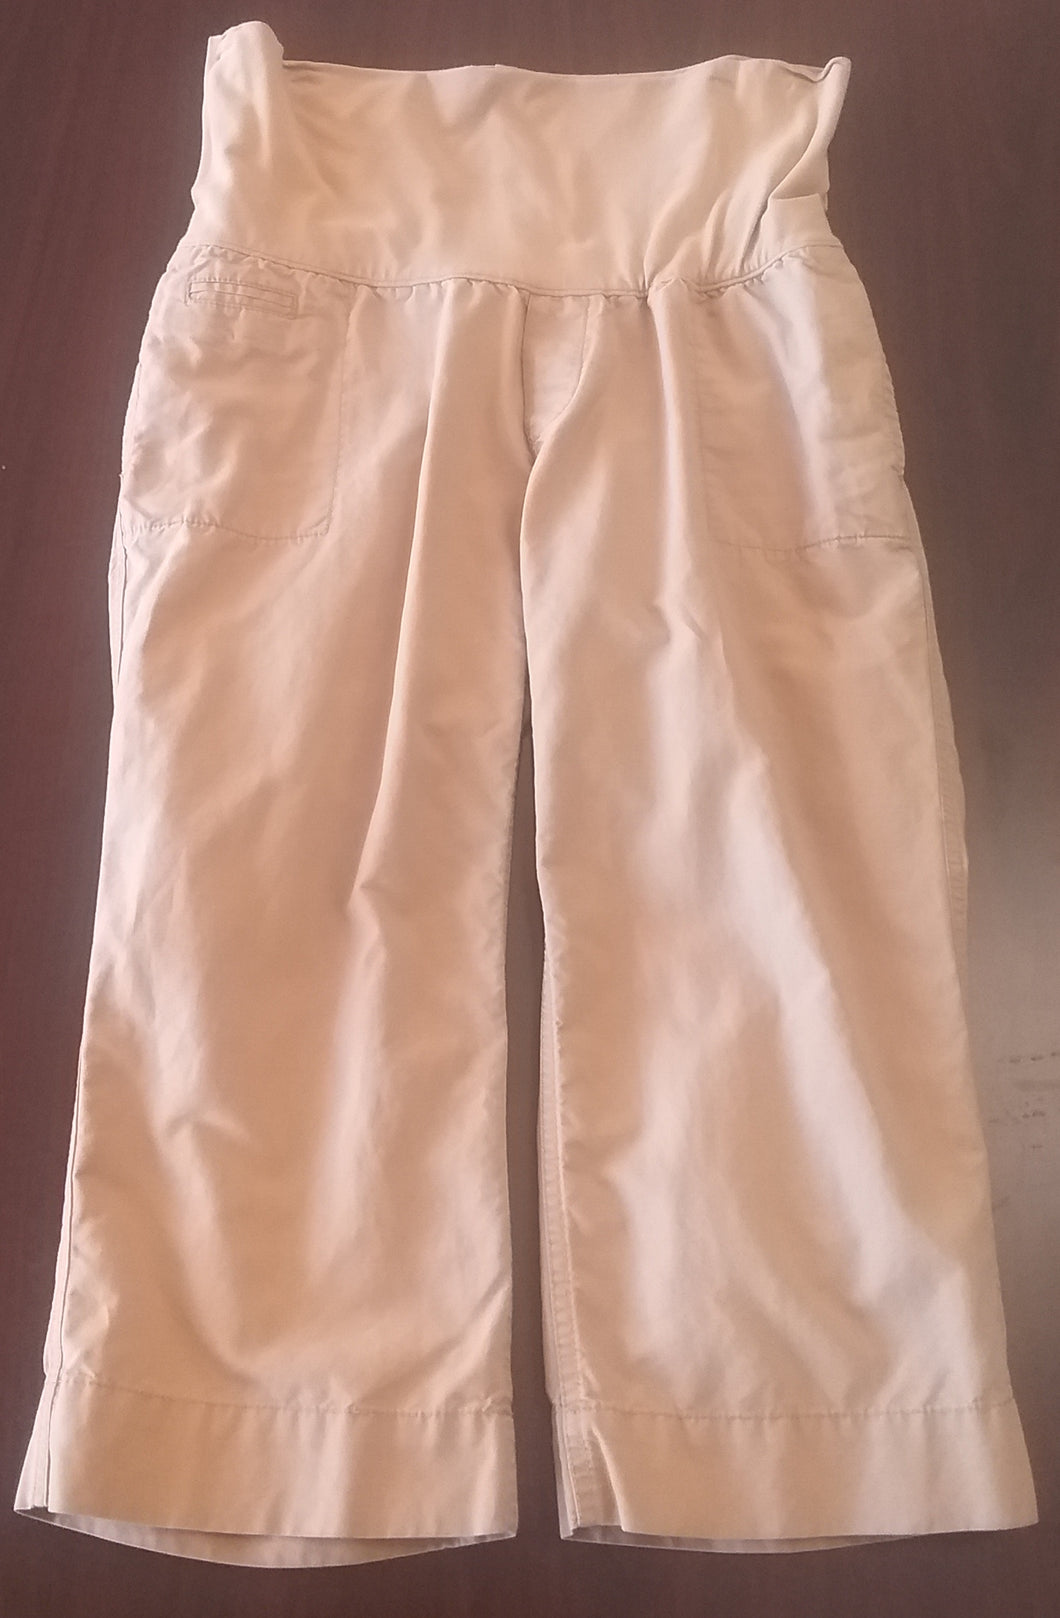 Size 6 Full Panel Khaki Maternity Capri